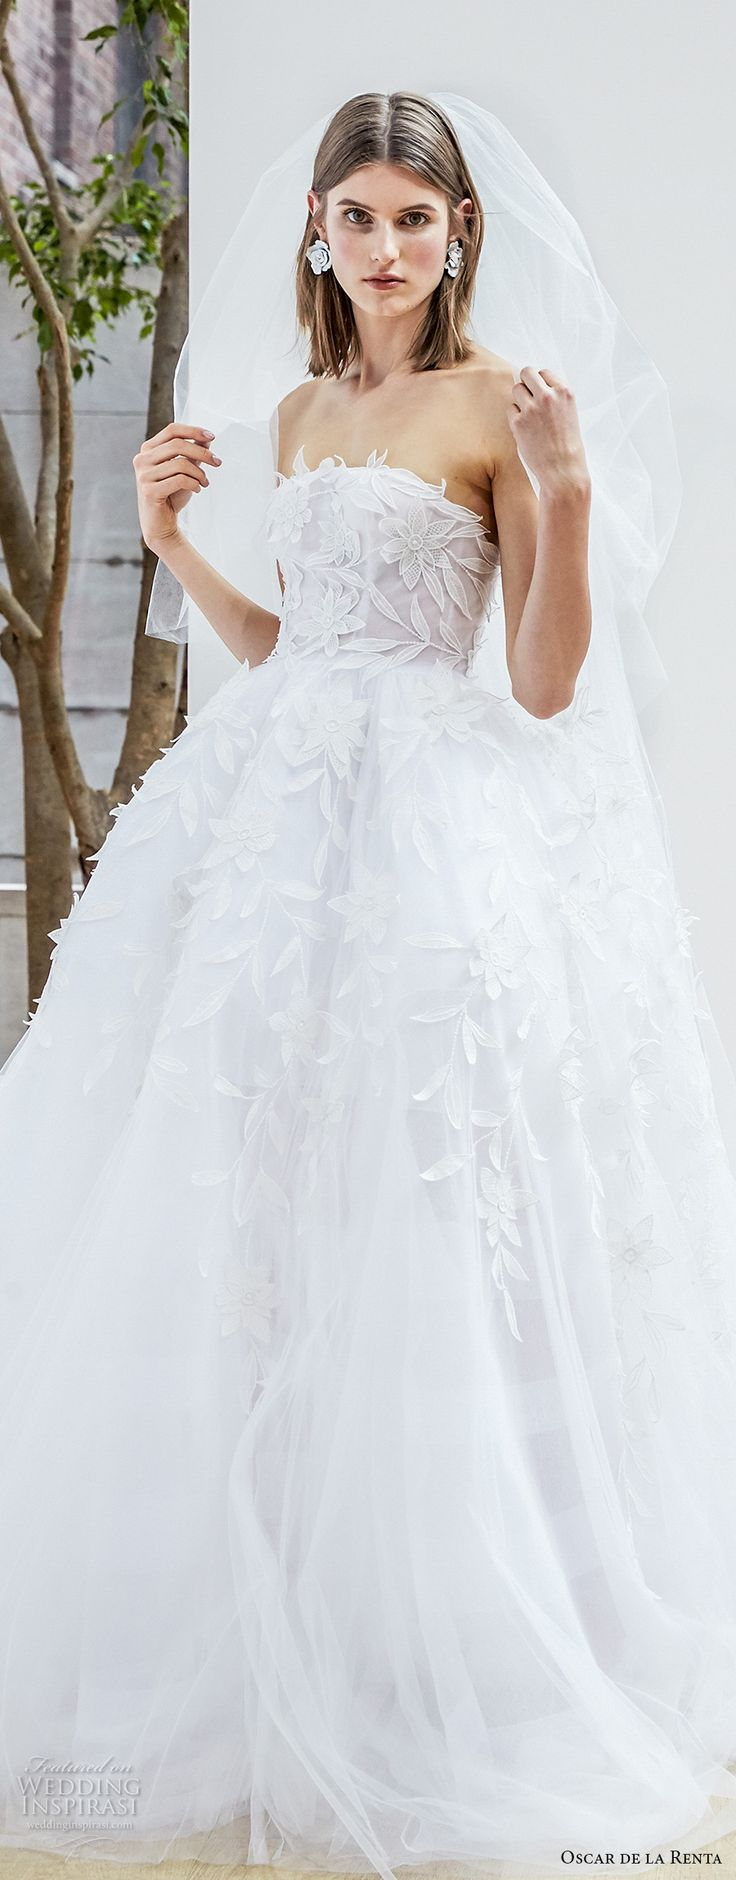 Carolina herrera wedding dress style imogen thomas